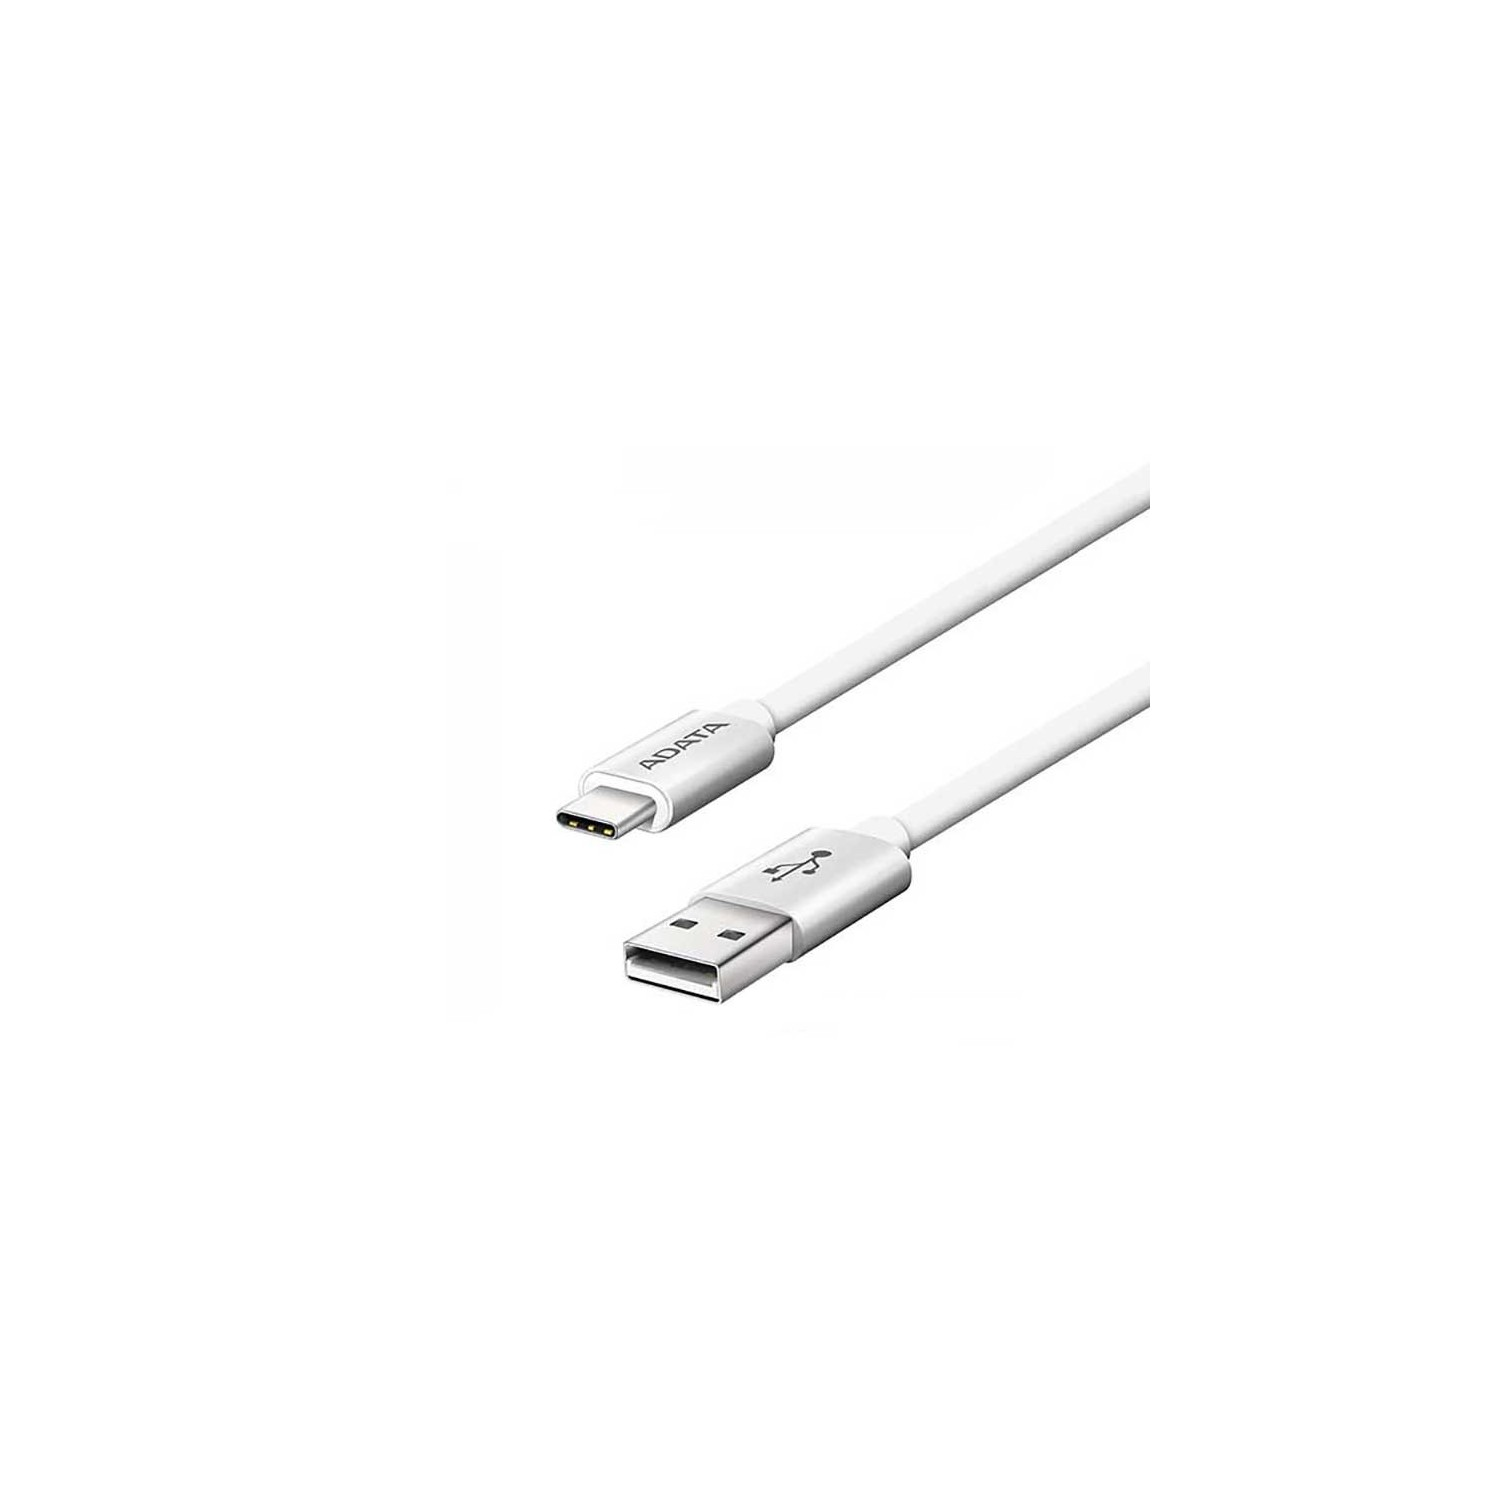 Cable Datos ADATA Tipo USB-A a USB-C 3.1- Plata - 1m Universal